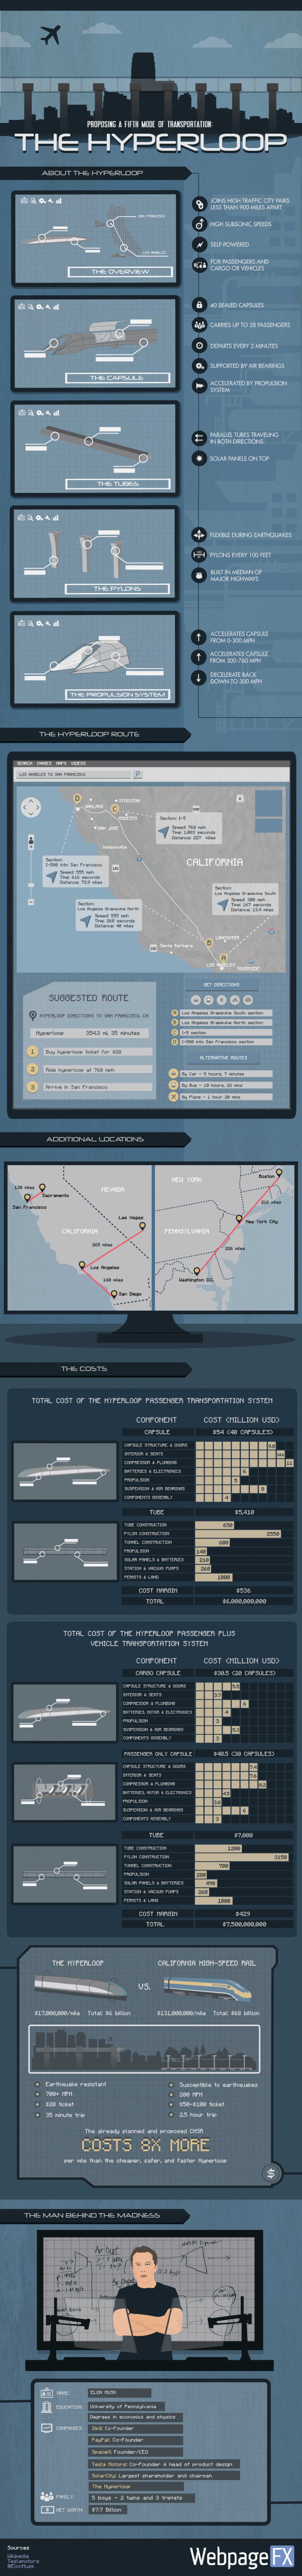 The Hyperloop Infographic